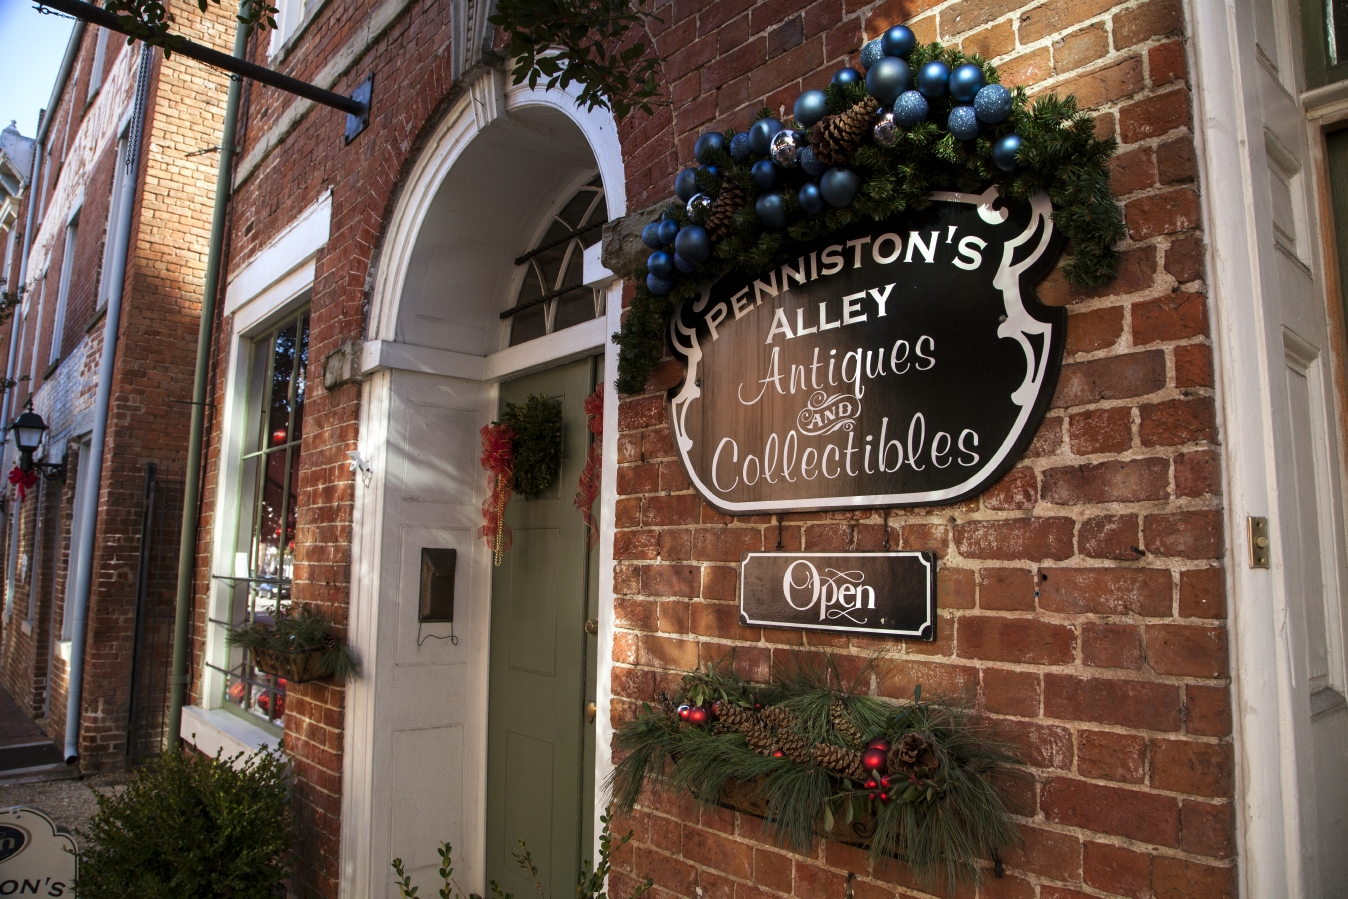 Penniston's Alley Antiques and Collectibles